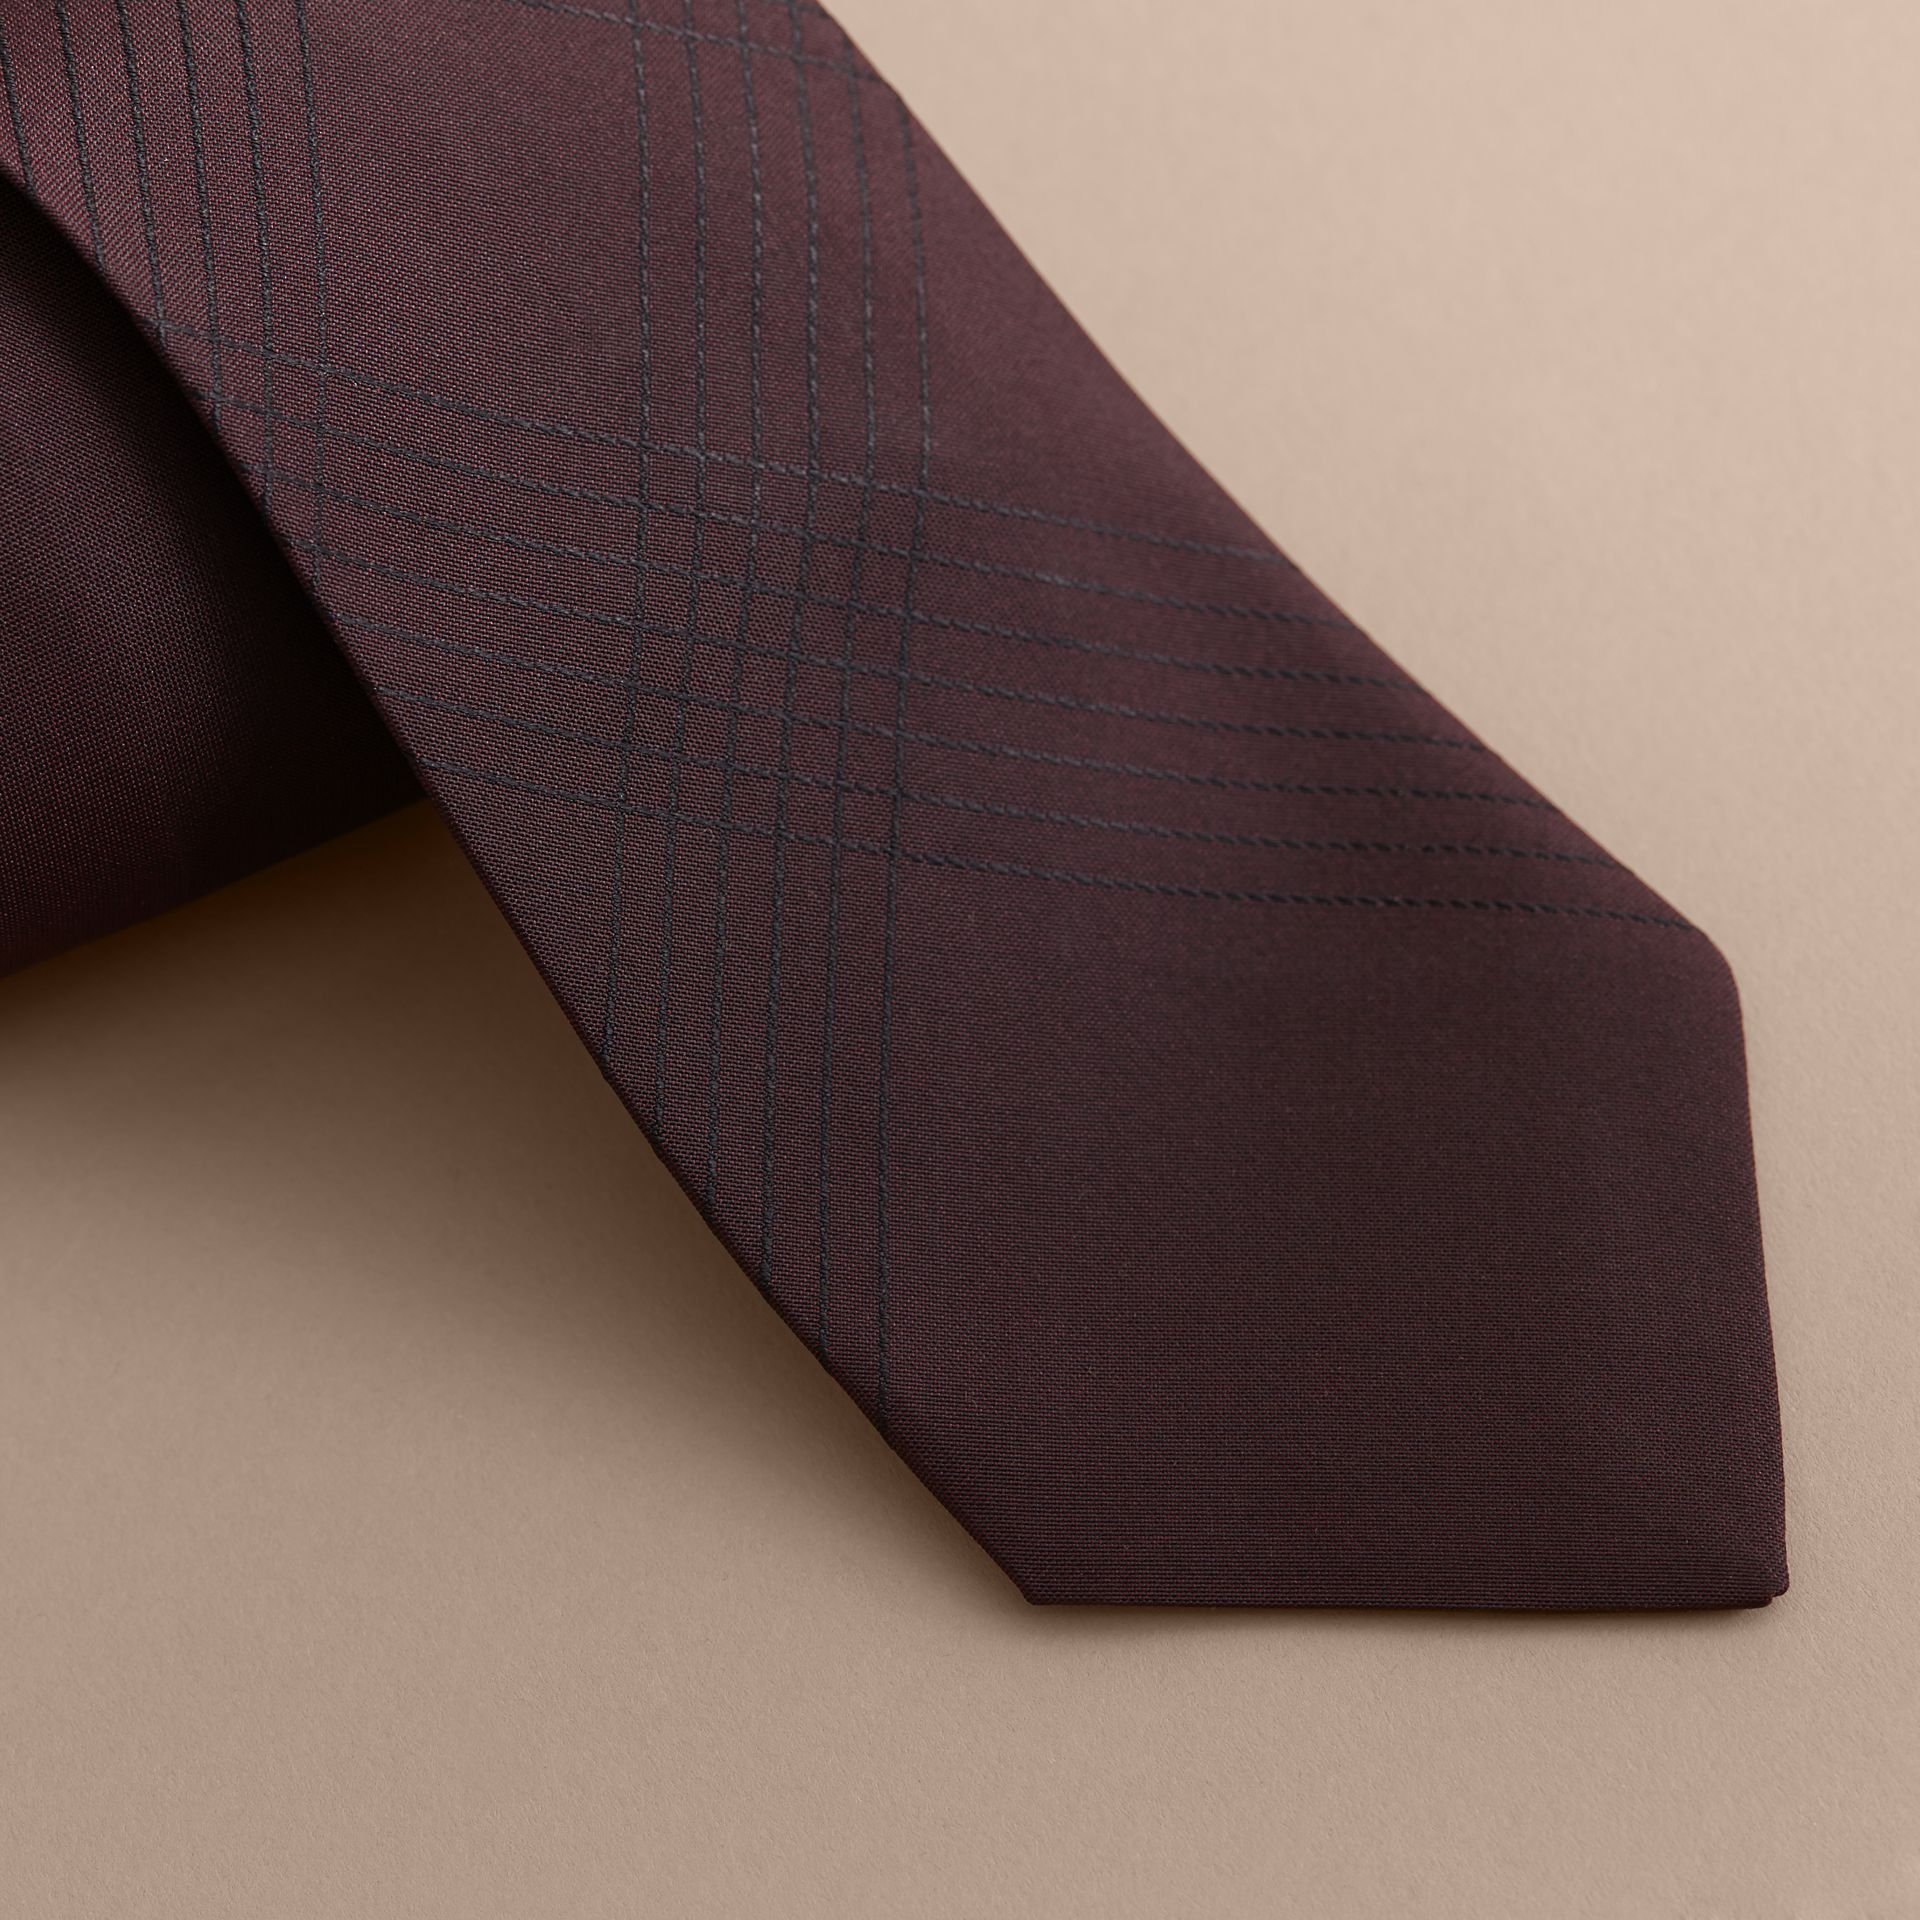 Modern Cut Topstitched Check Silk Tie in Burgundy - Men | Burberry Australia - gallery image 2